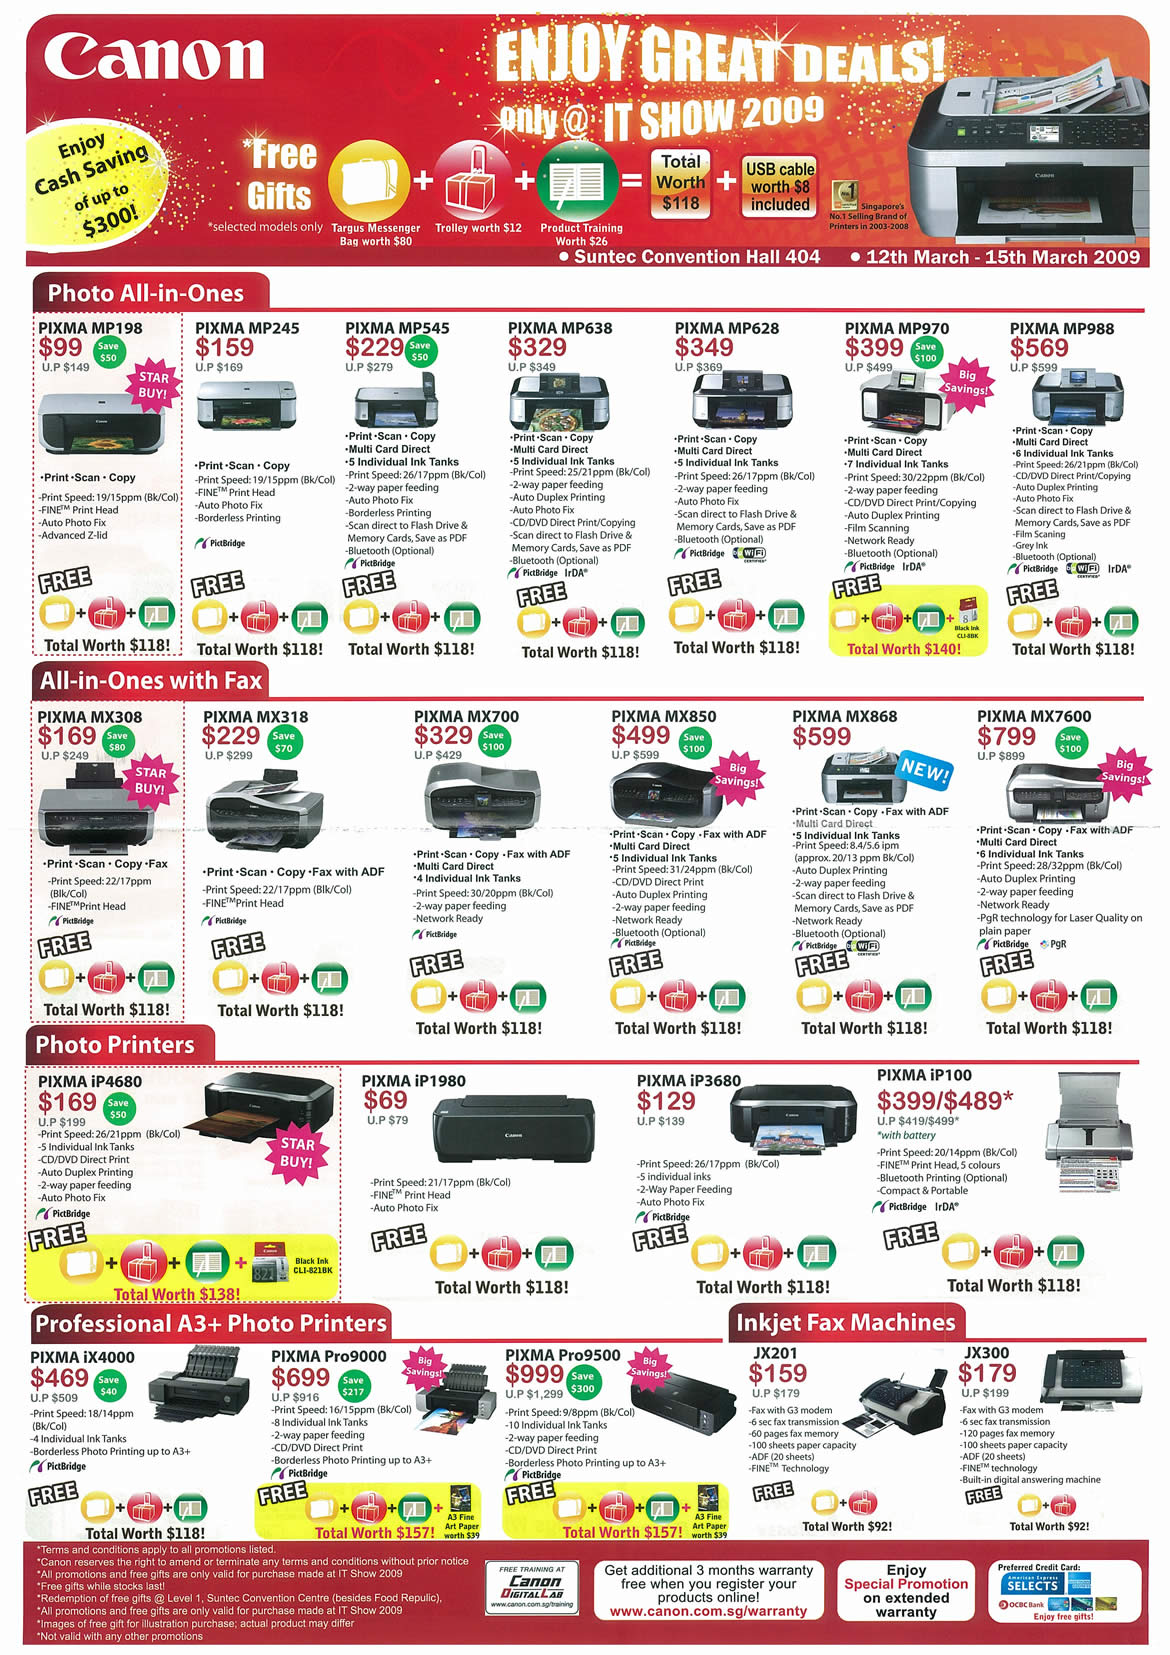 IT Show 2009 price list image brochure of Canon Inkjet Pixma Printers Professional (tclong)